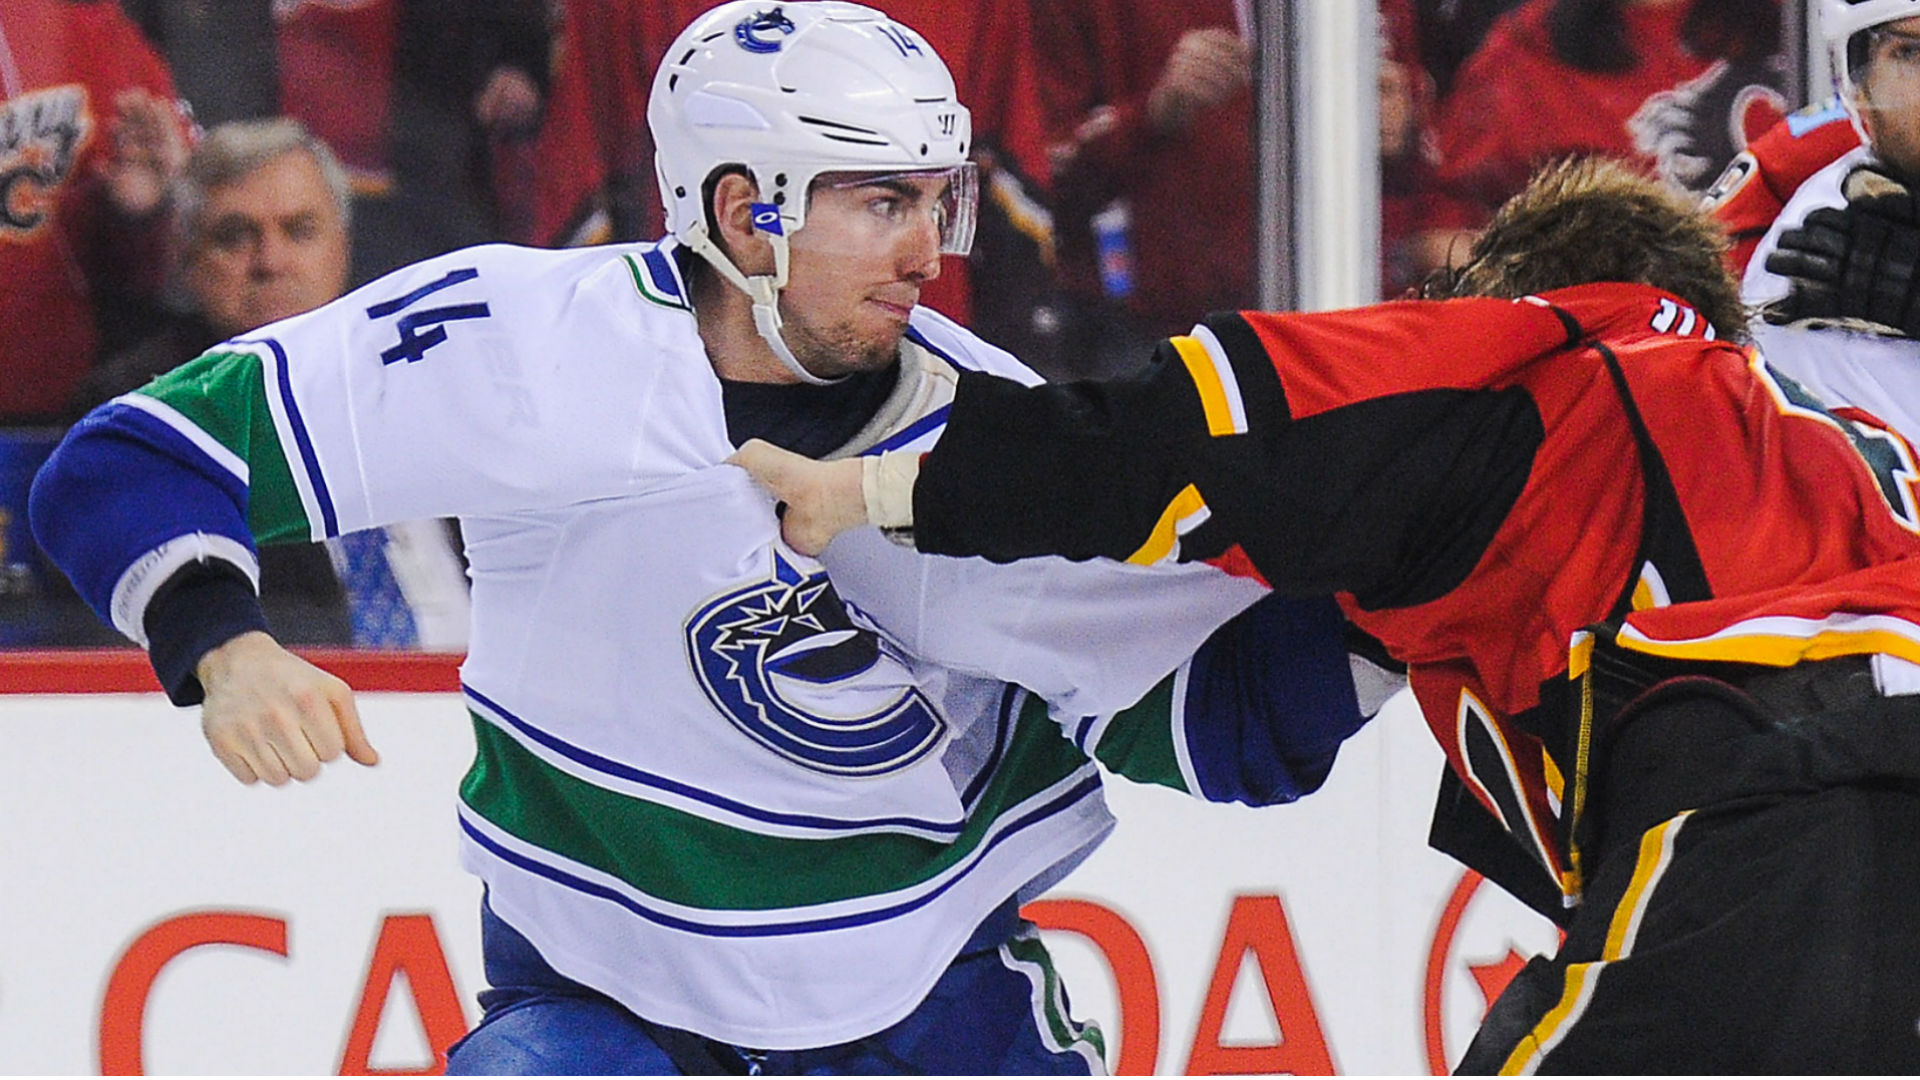 NHL won't suspend Canucks' Alexandre Burrows for instigating